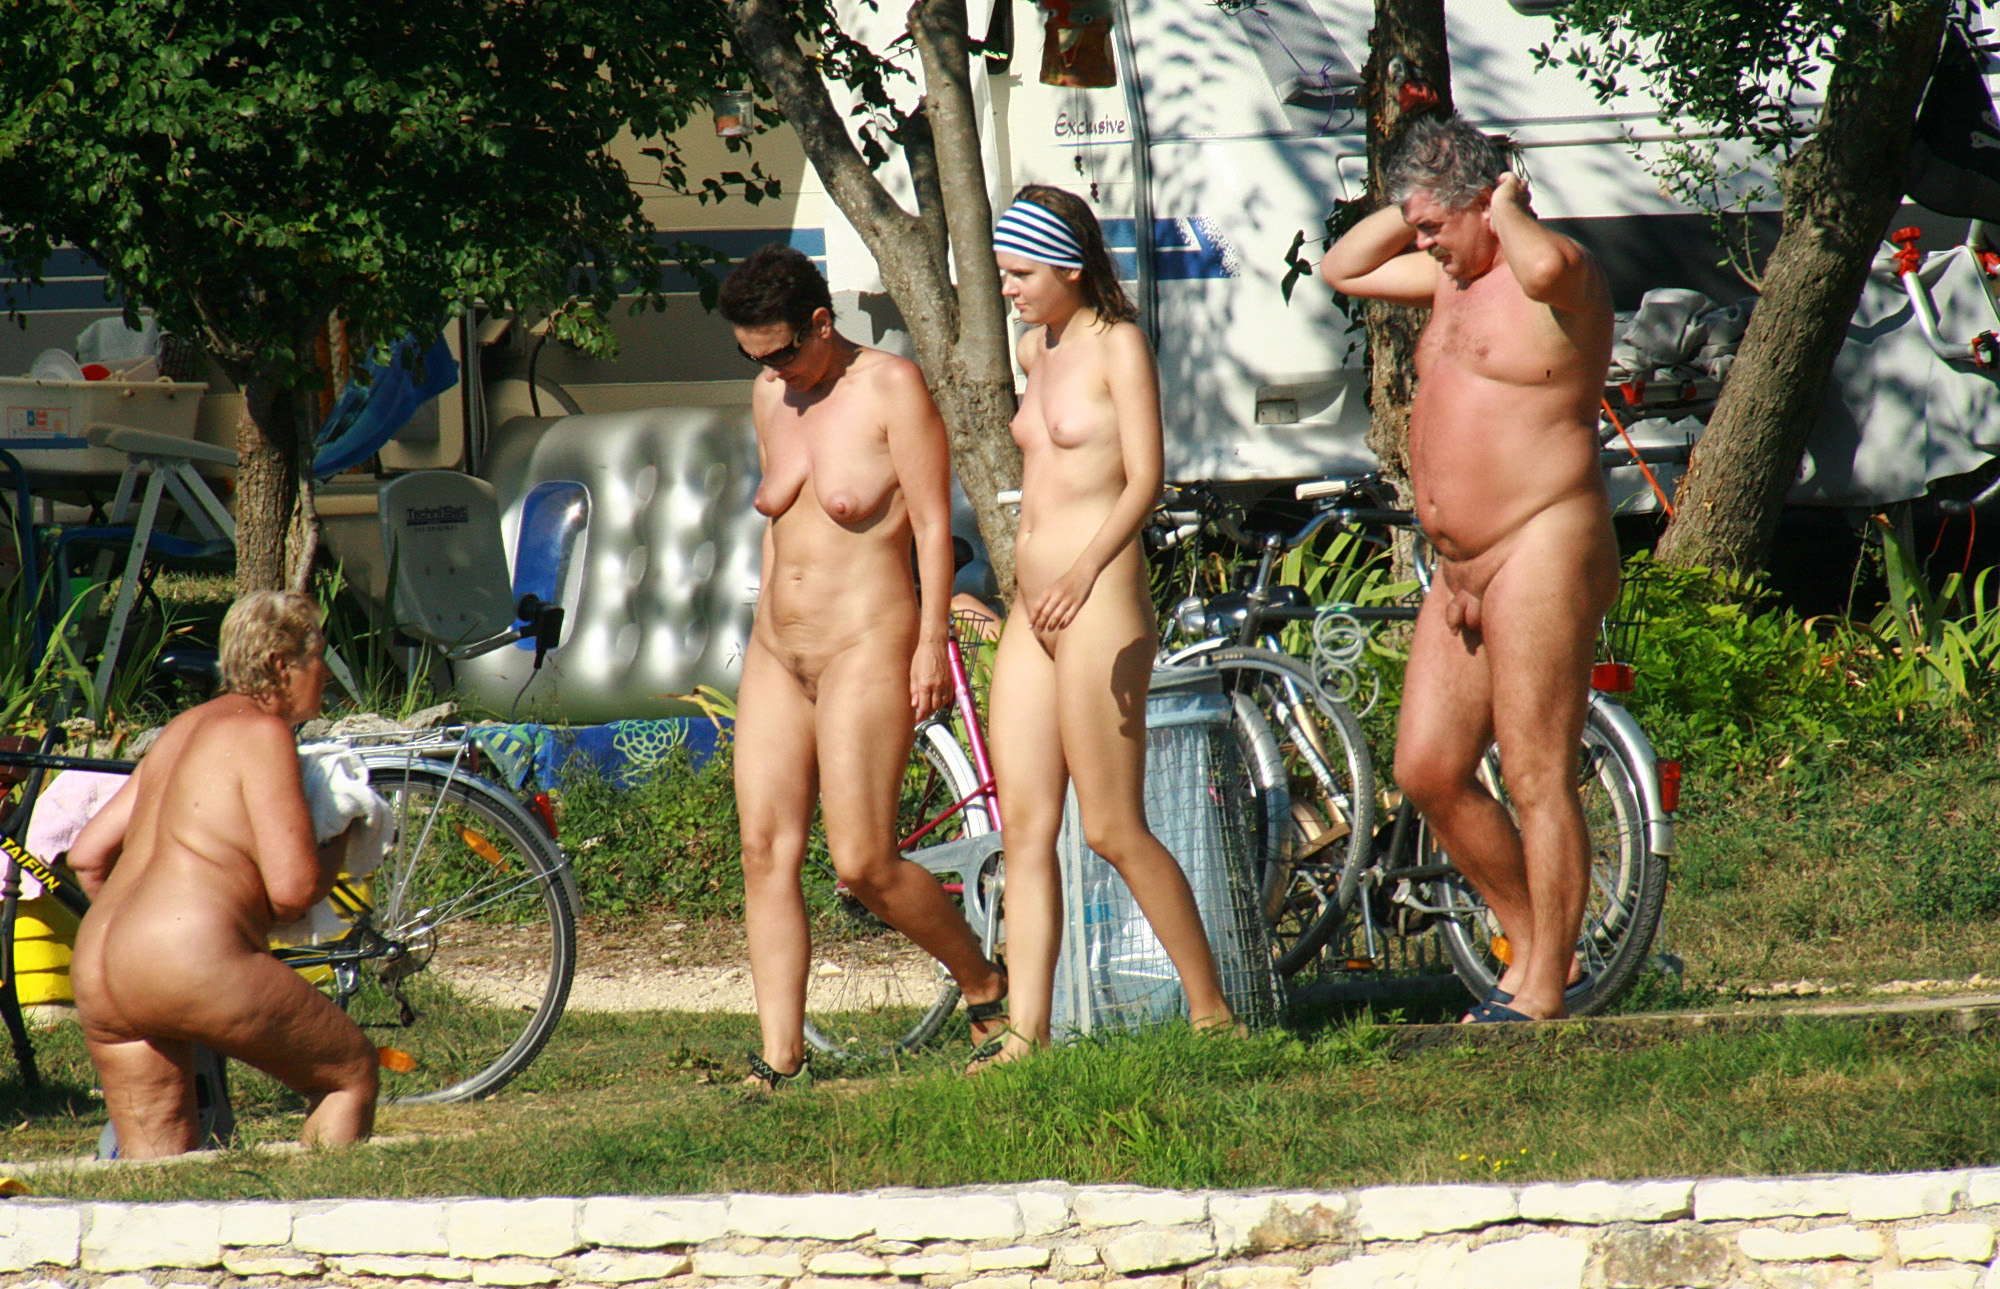 Act Nudist Club Helps Fire